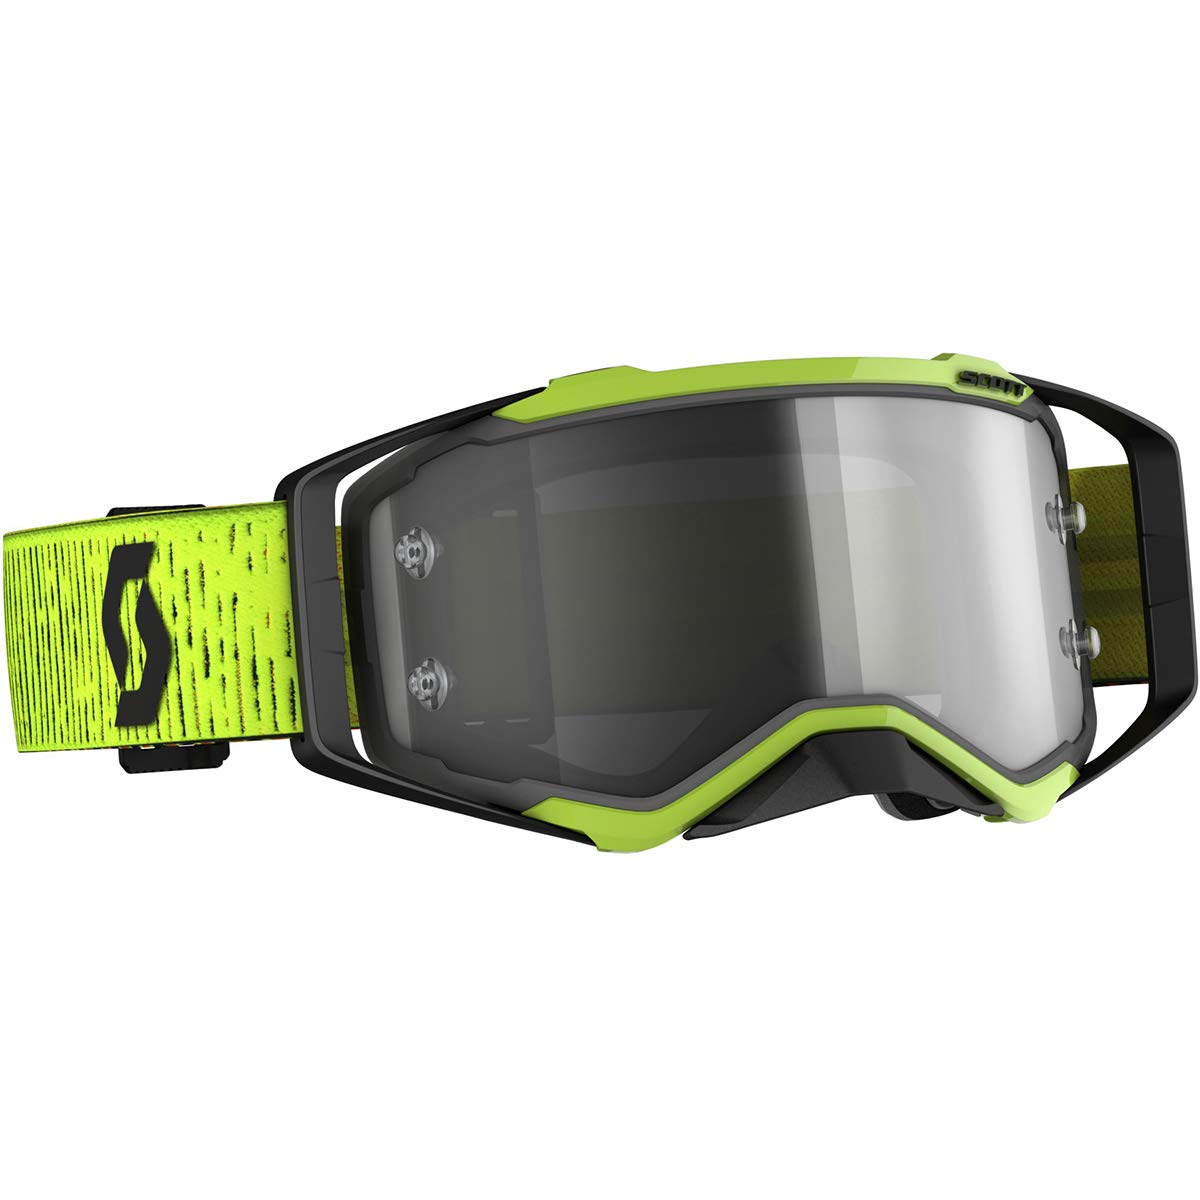 Scott Prospect LS Adult Off-Road Motorcycle Goggles - Black/Yellow/Light Sensitive Grey Works/One Size